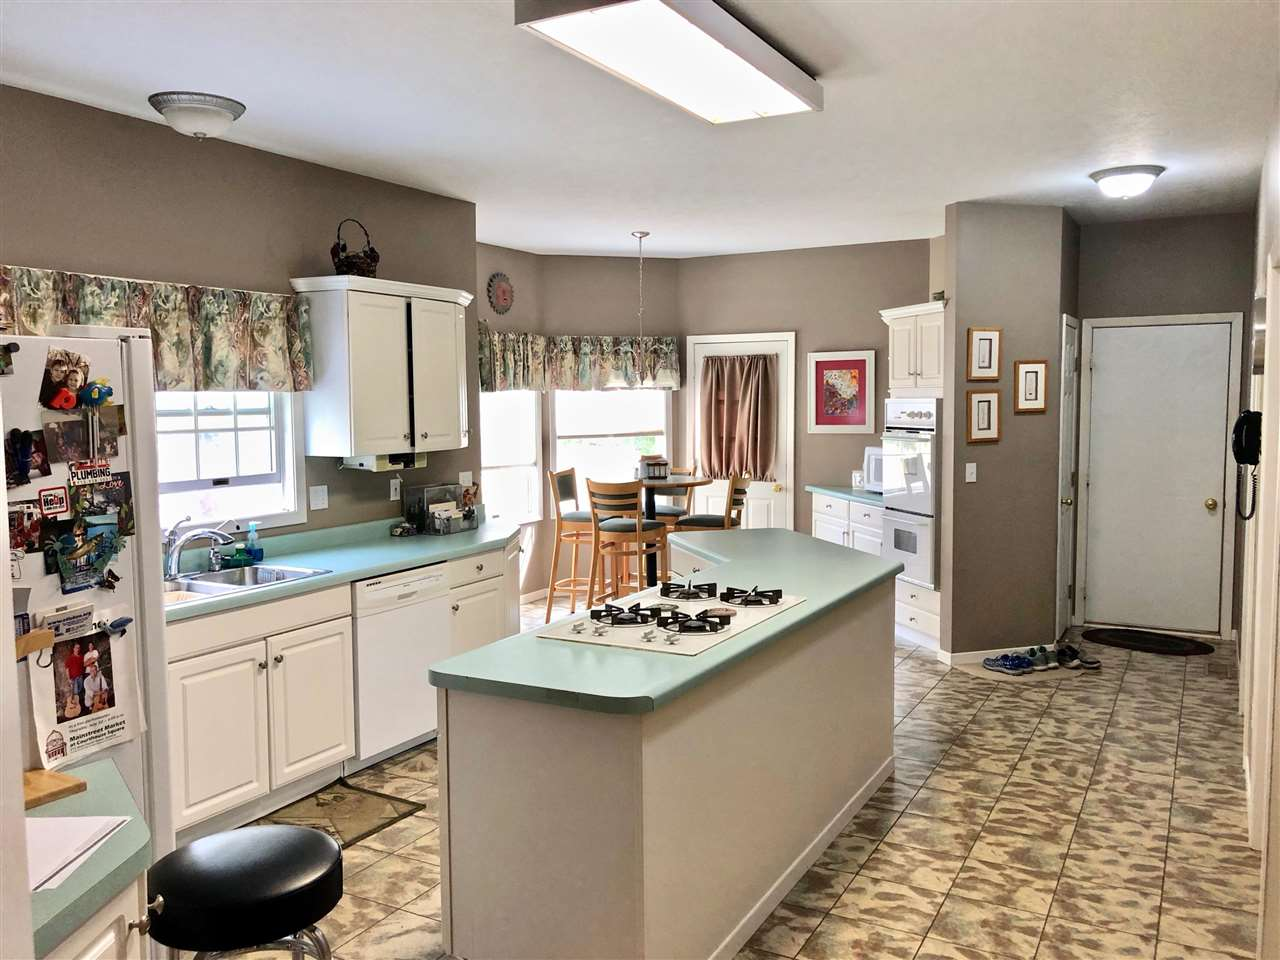 MLS# 201467 for Sale